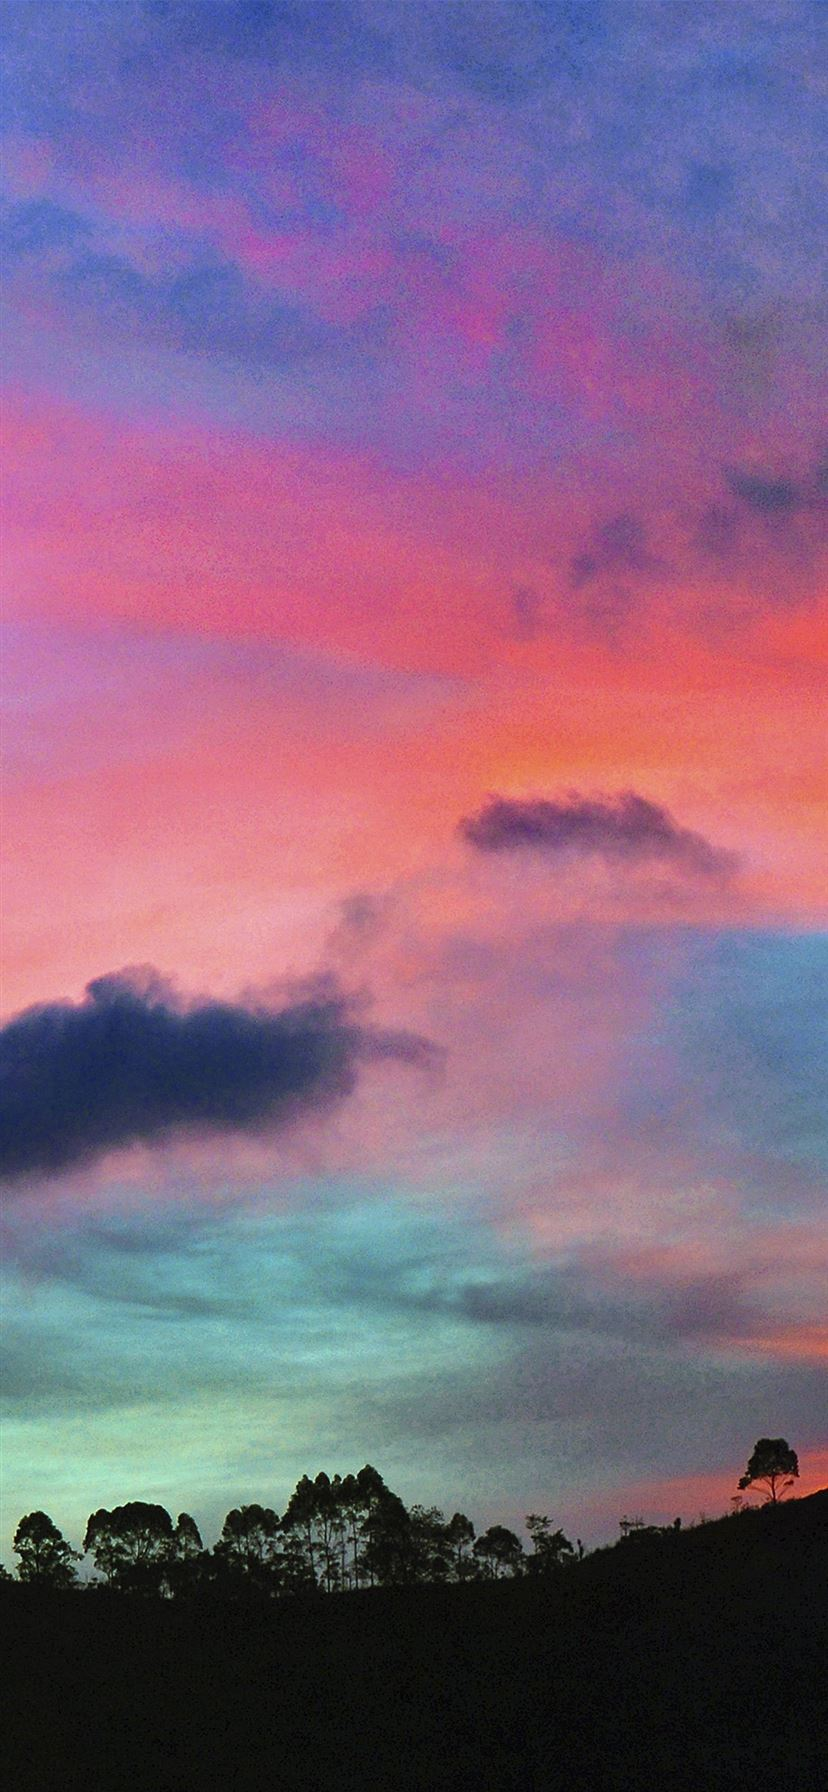 Sky Rainbow Cloud Sunset Iphone 11 Wallpapers Free Download